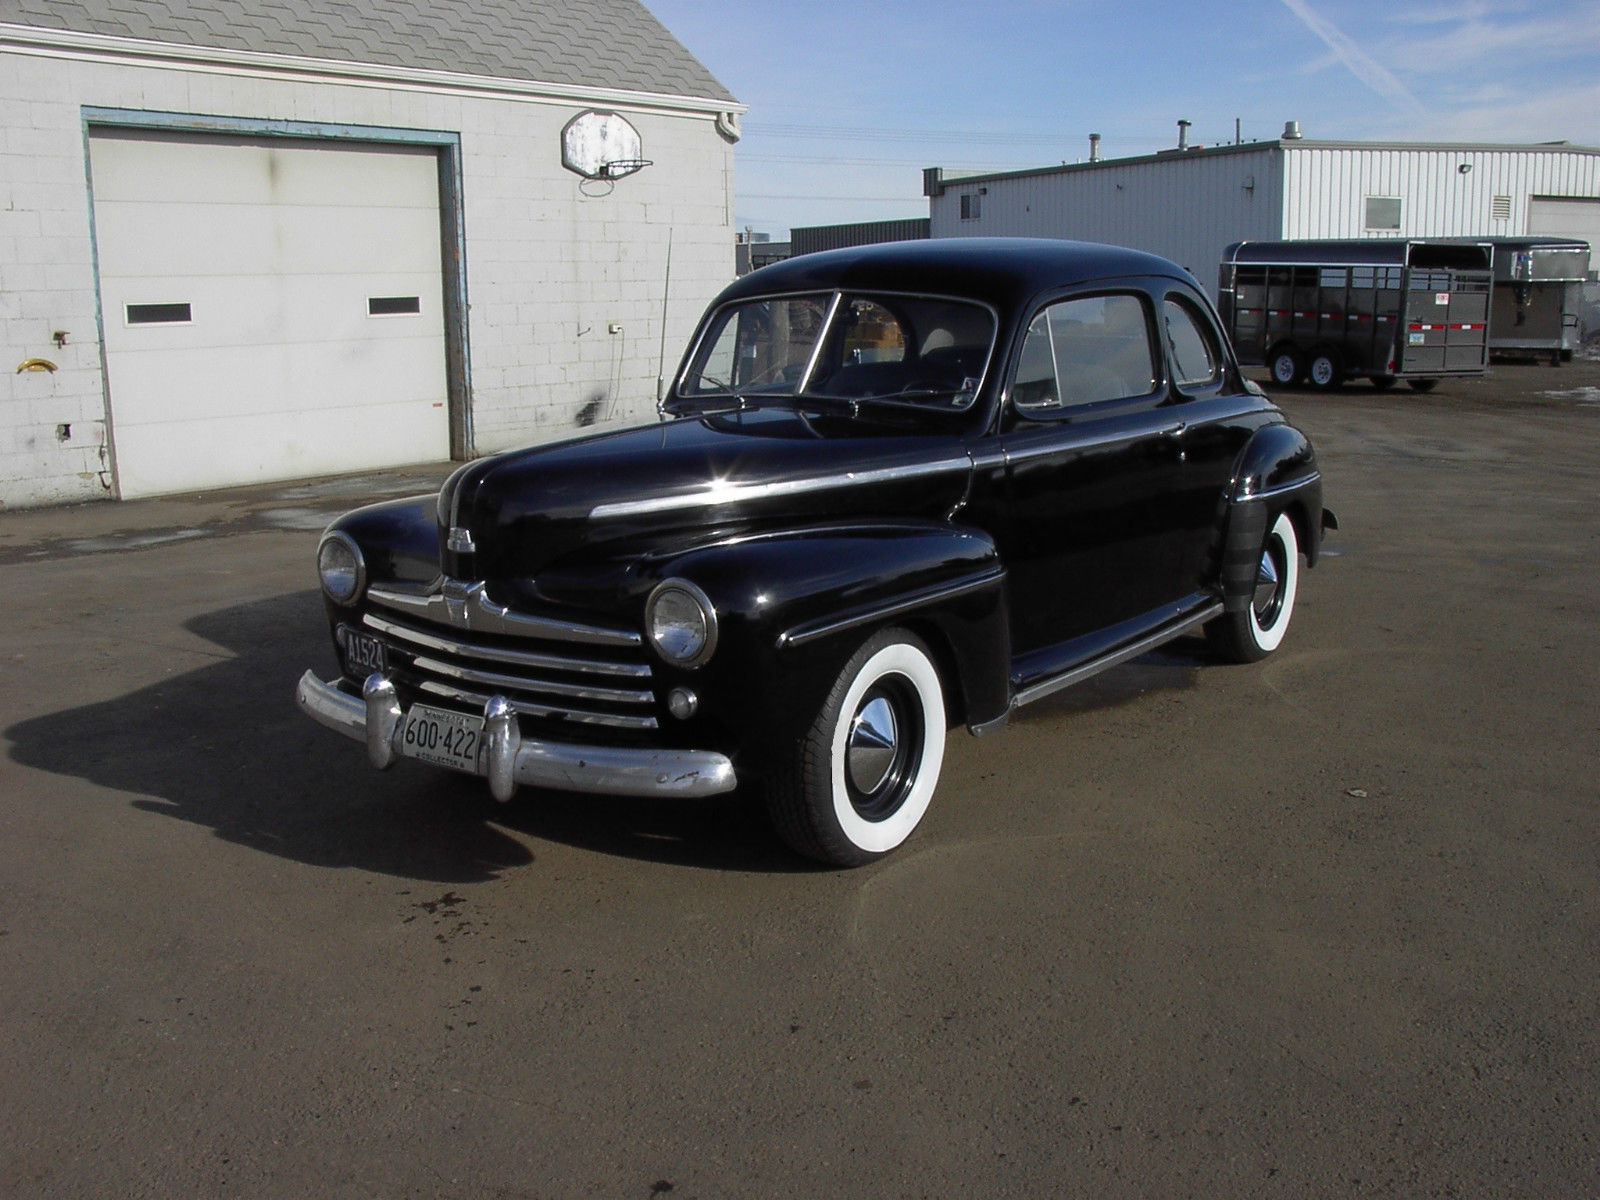 1948 48 ford flathead v8 3 speed coupe hot rod black new interior runs great for sale in mandan. Black Bedroom Furniture Sets. Home Design Ideas